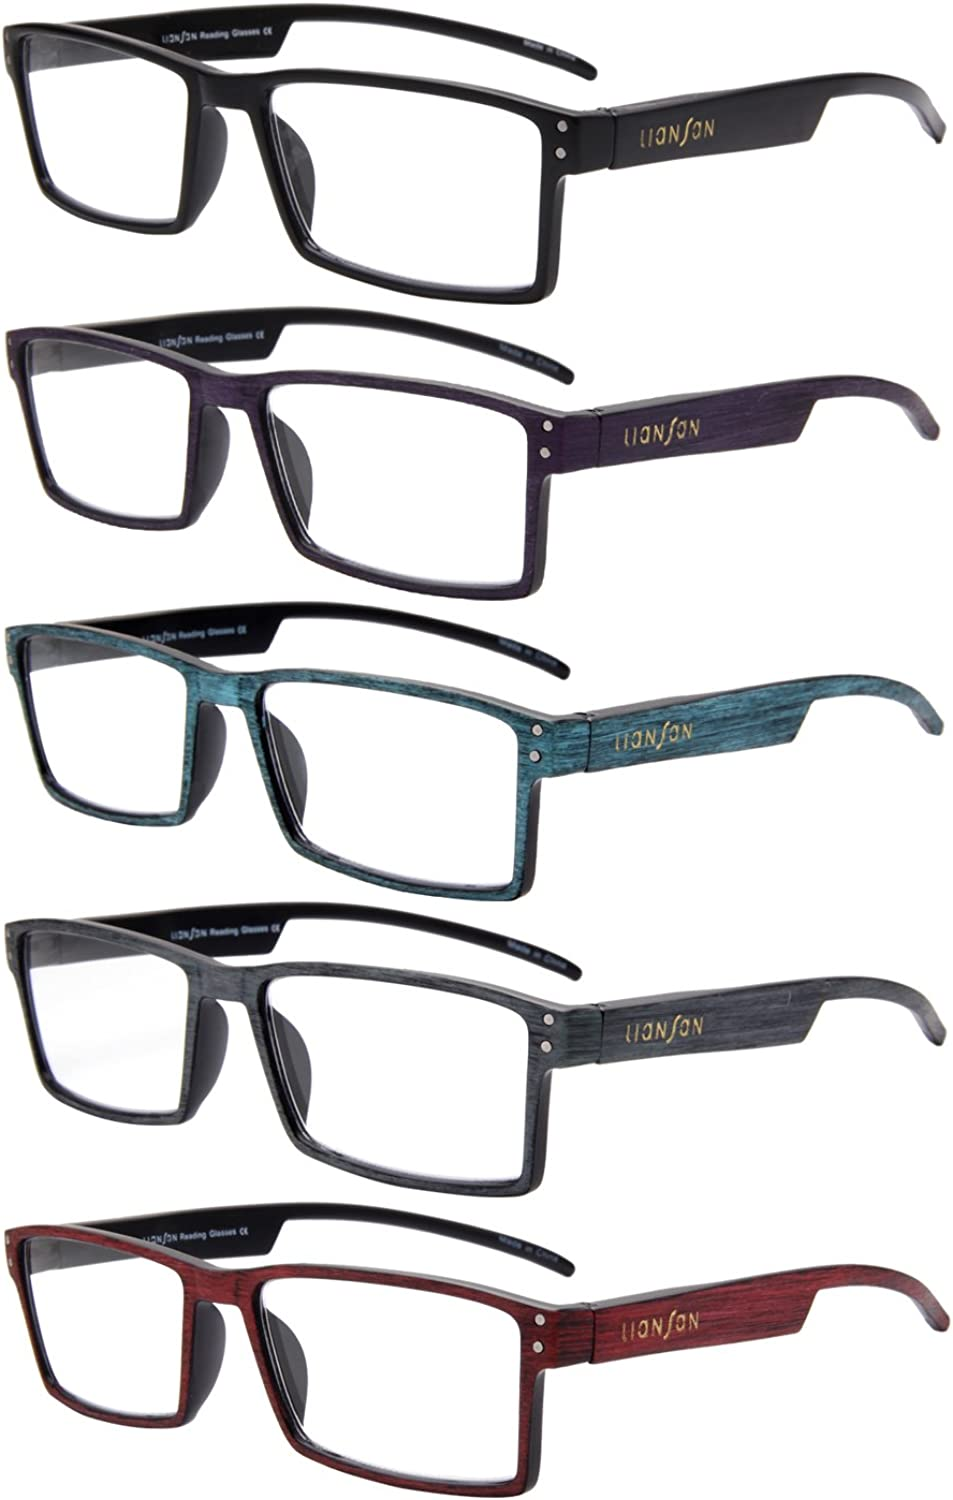 LianSan Reading Glasses 5 Pack Spring Hinge Quality Fashion WoodLook Printed Arms Men and Women Unisex Glasses L3719